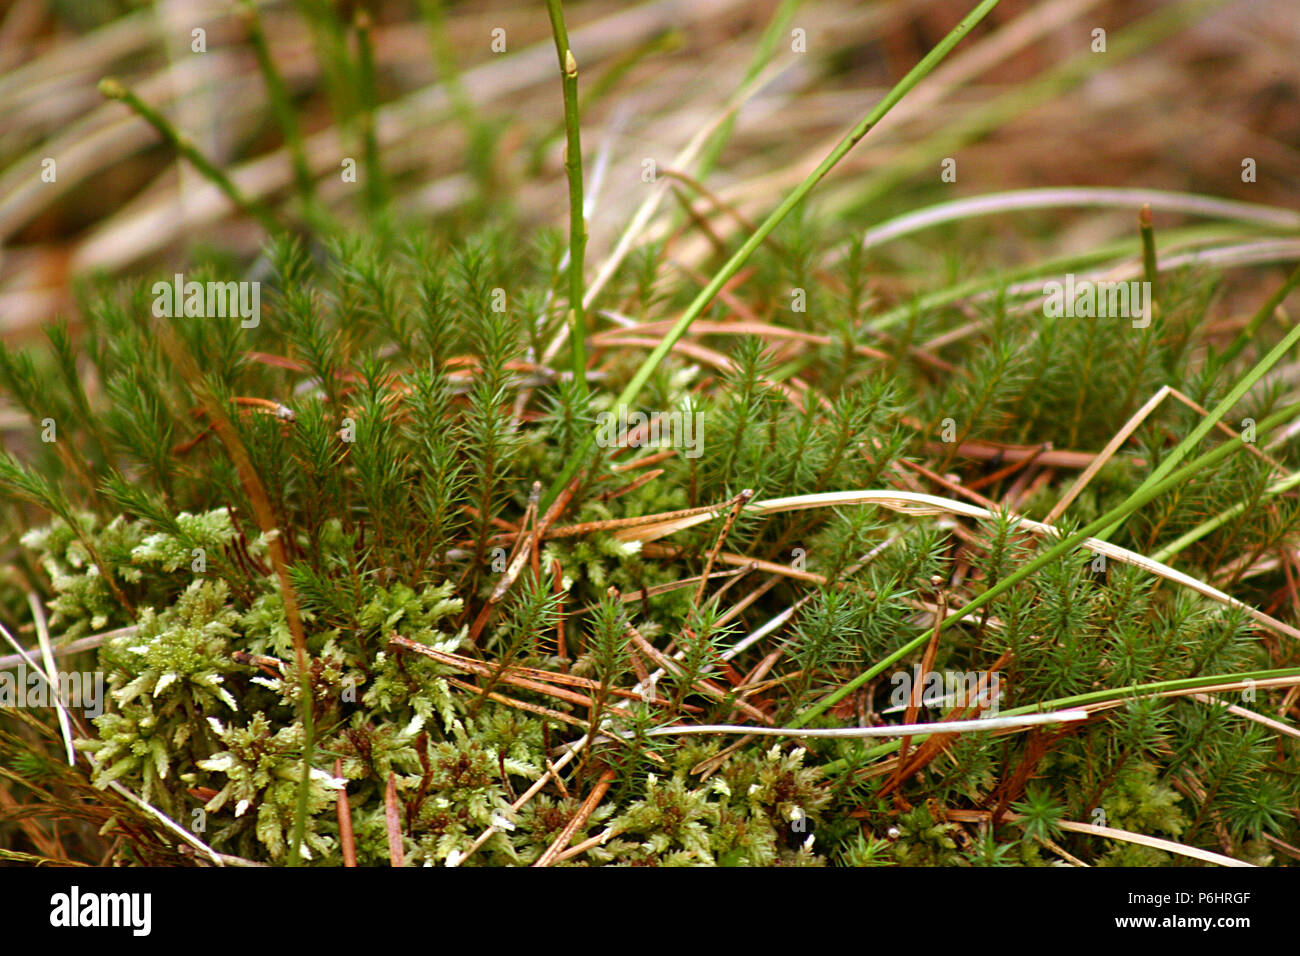 Small plants growing at high altitude - Stock Image